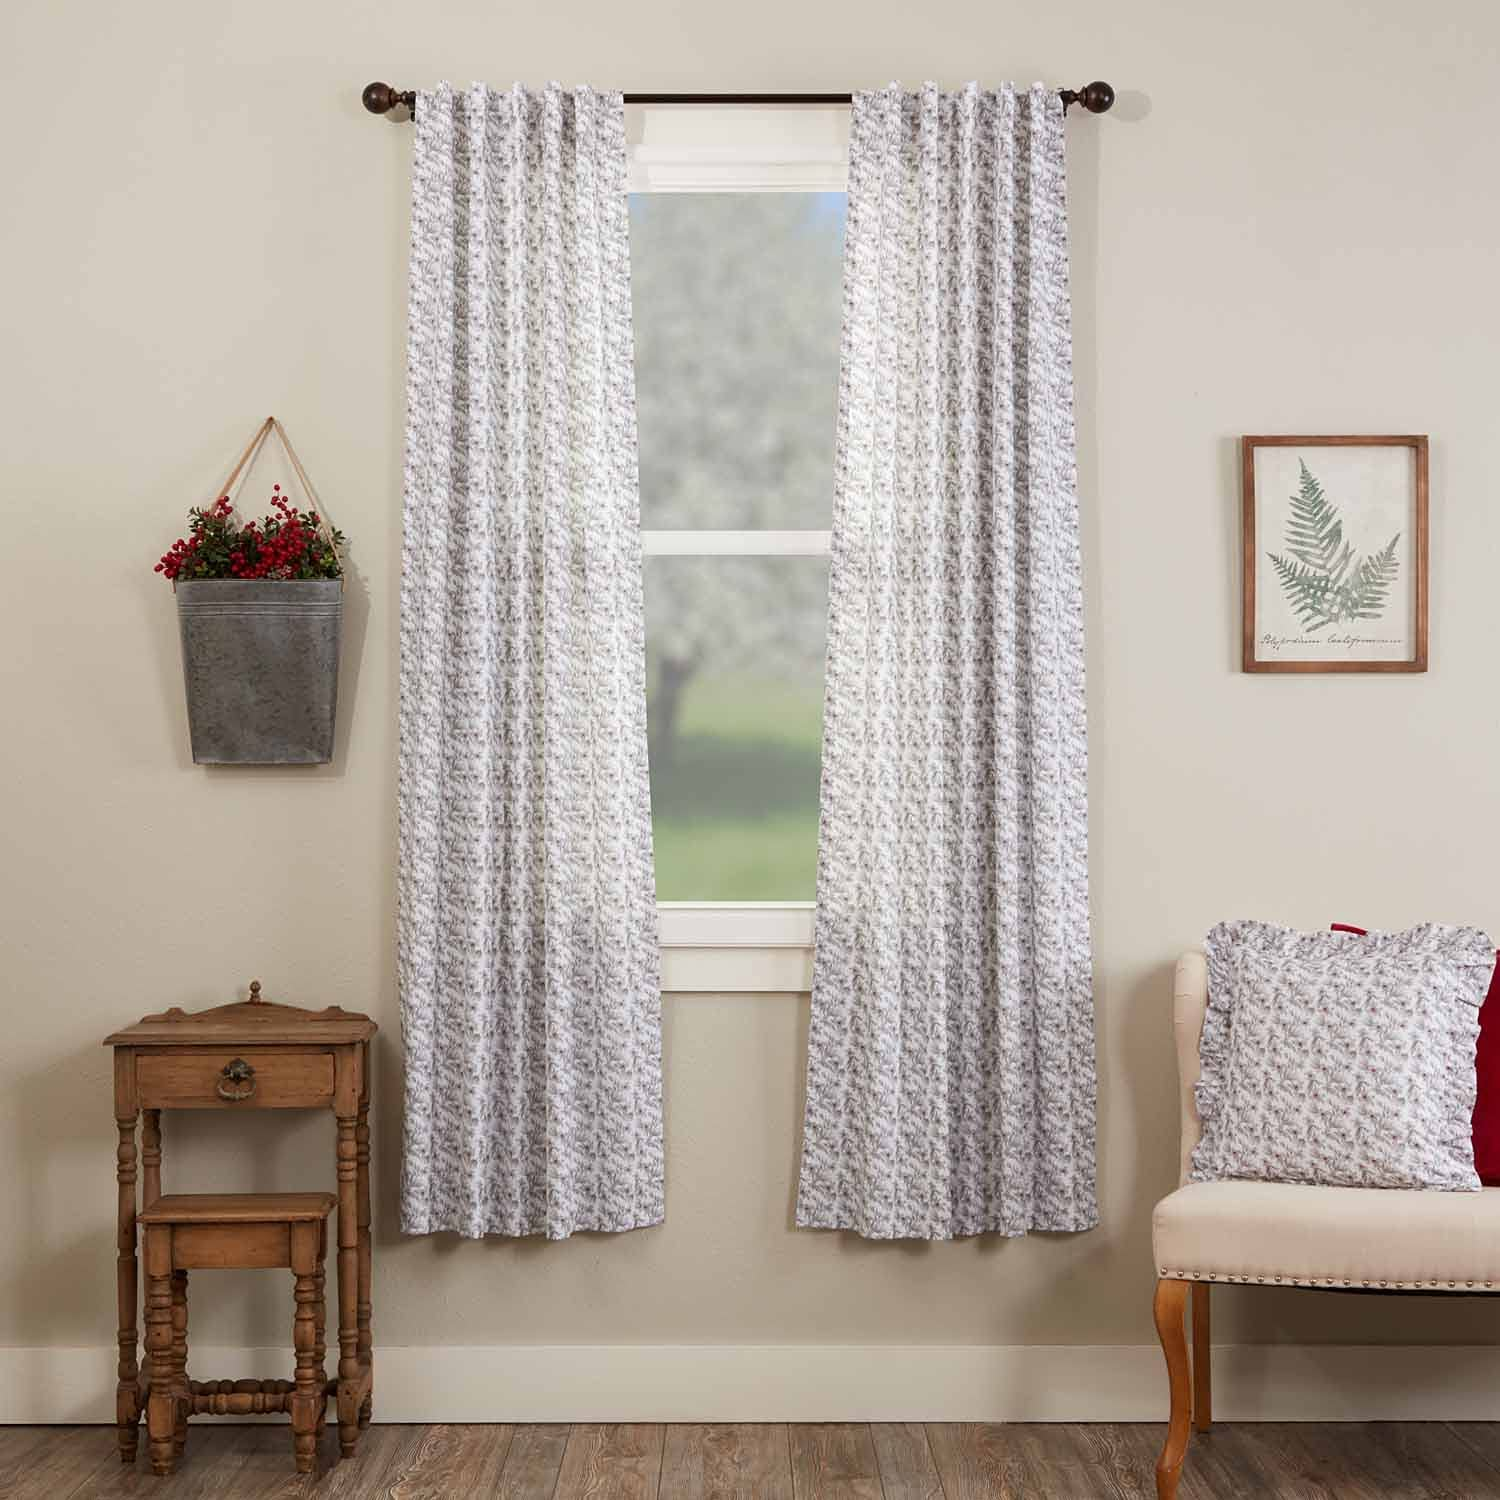 Piper Classics Twilight Floral Panel Curtains, Set of 2 Panels, 84